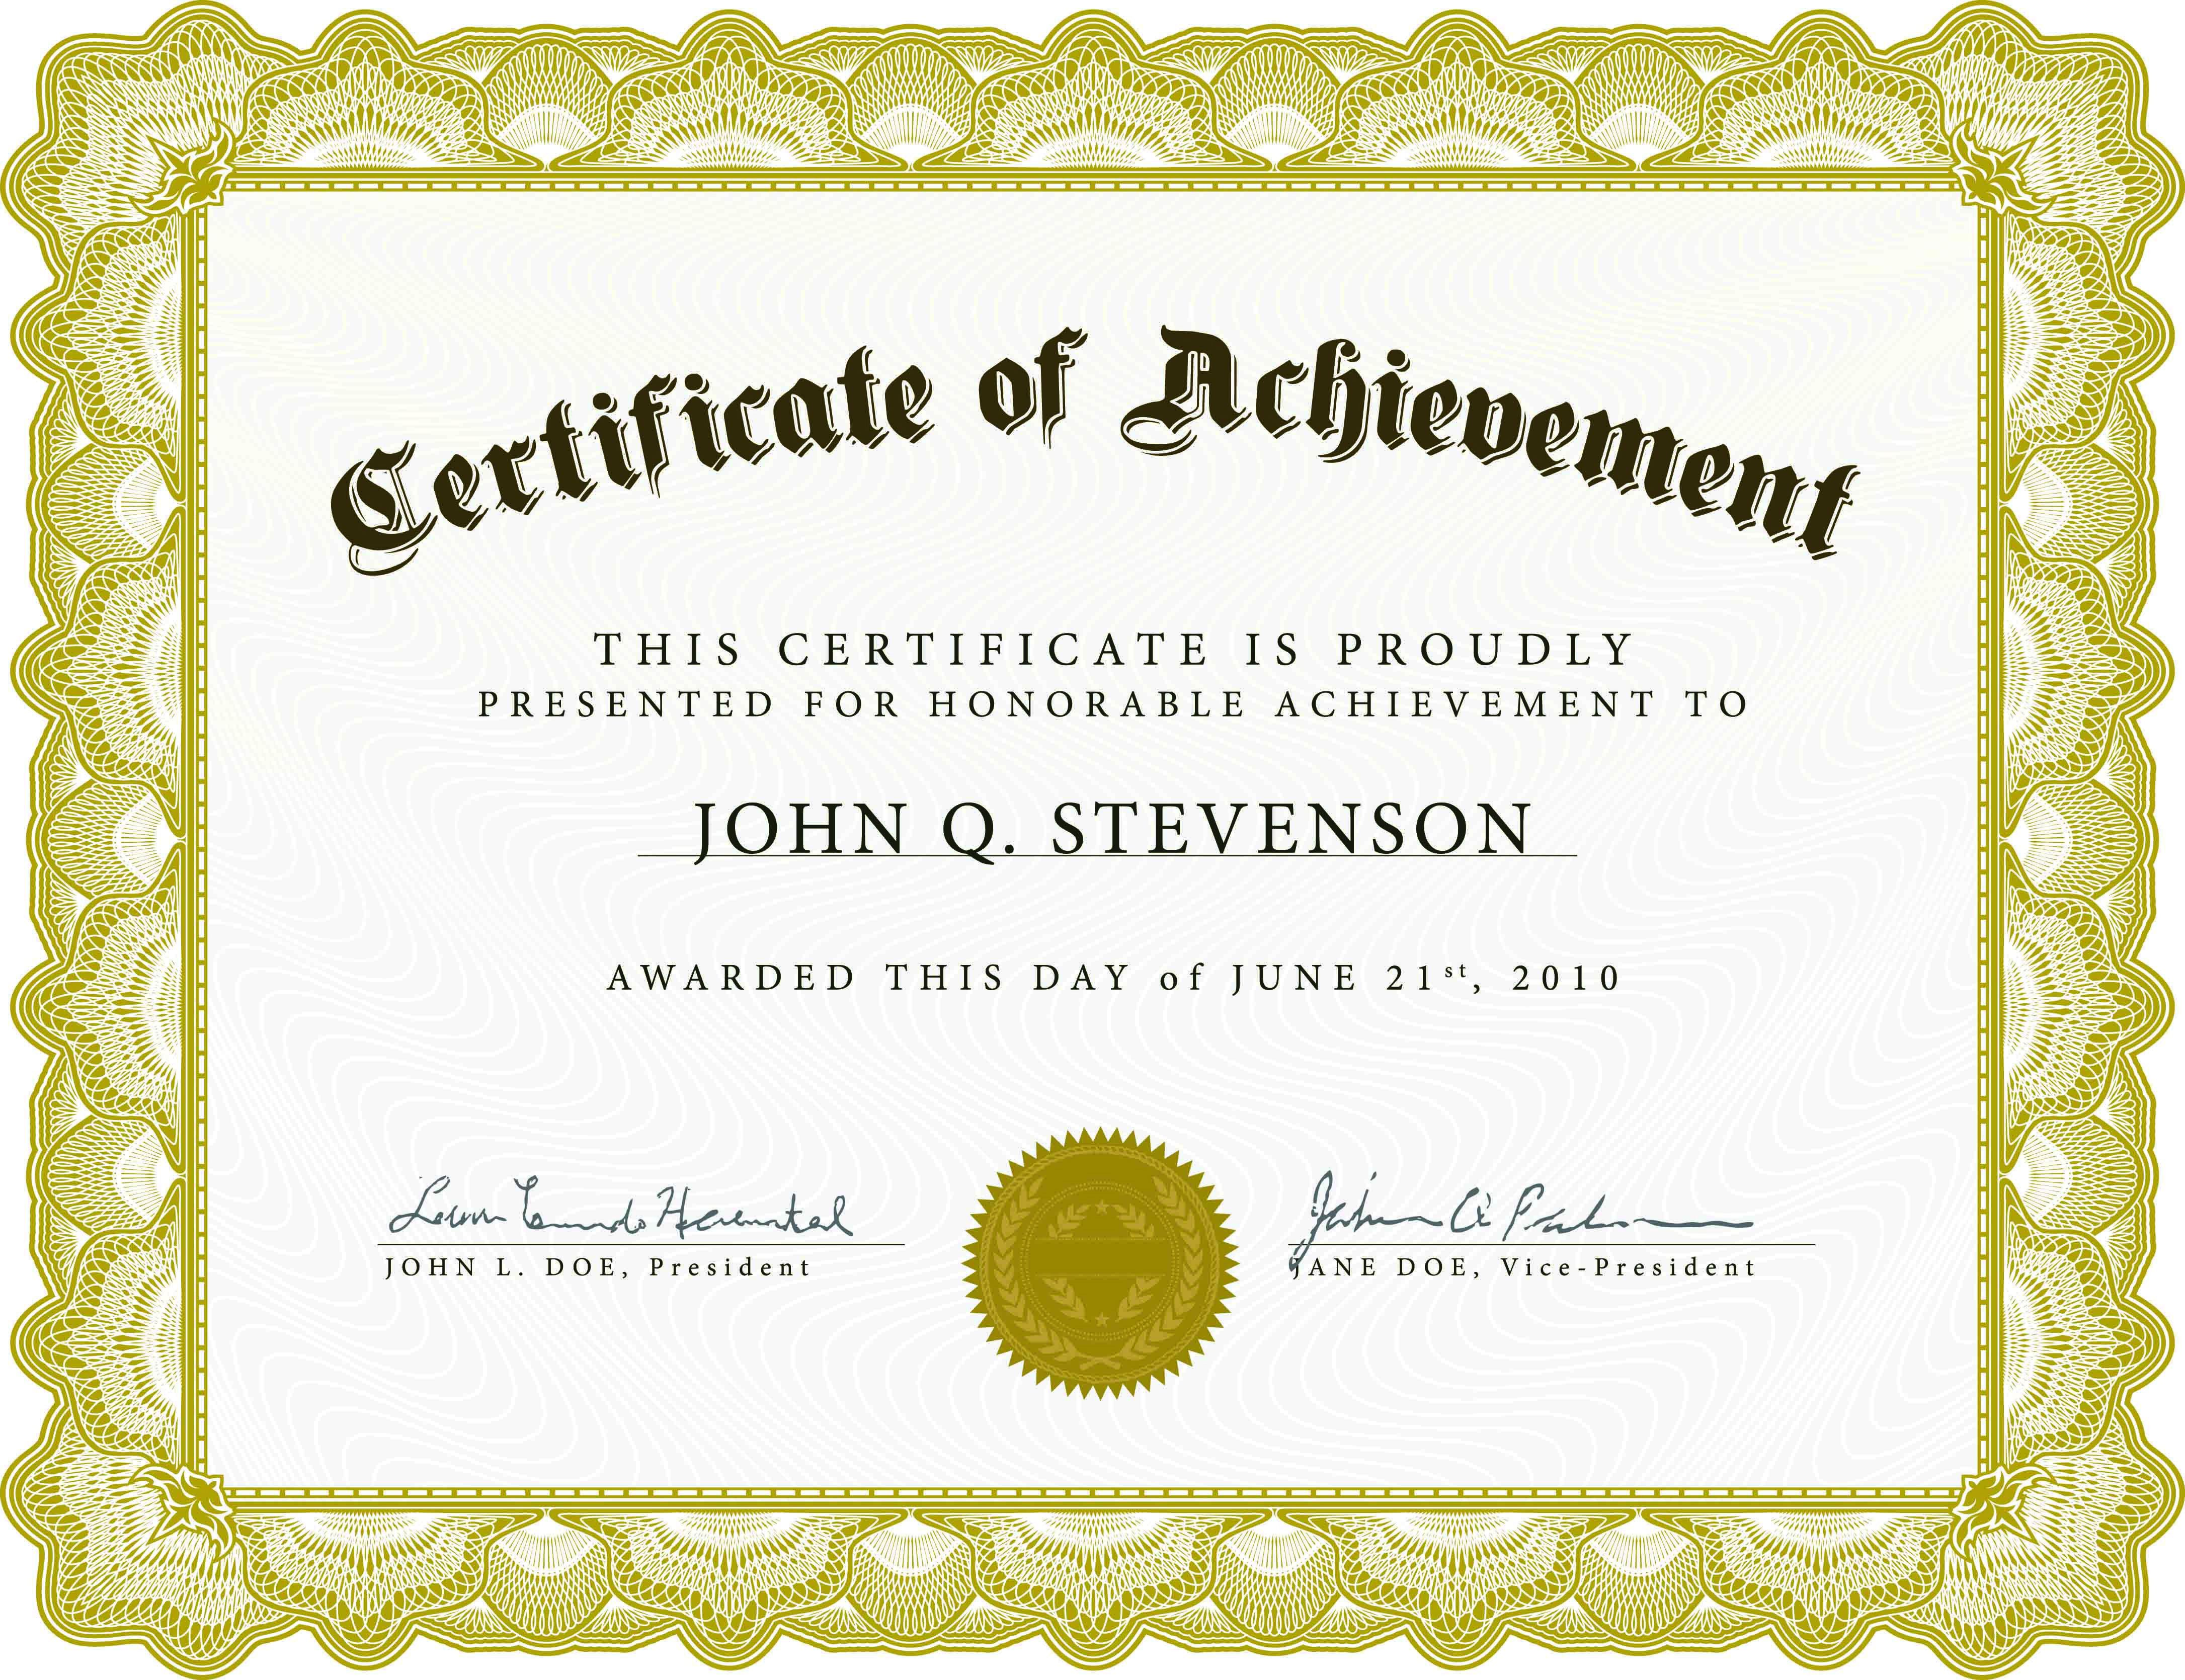 004 Unforgettable Award Certificate Template Word High Resolution  Doc Sample Wording ScholarshipFull